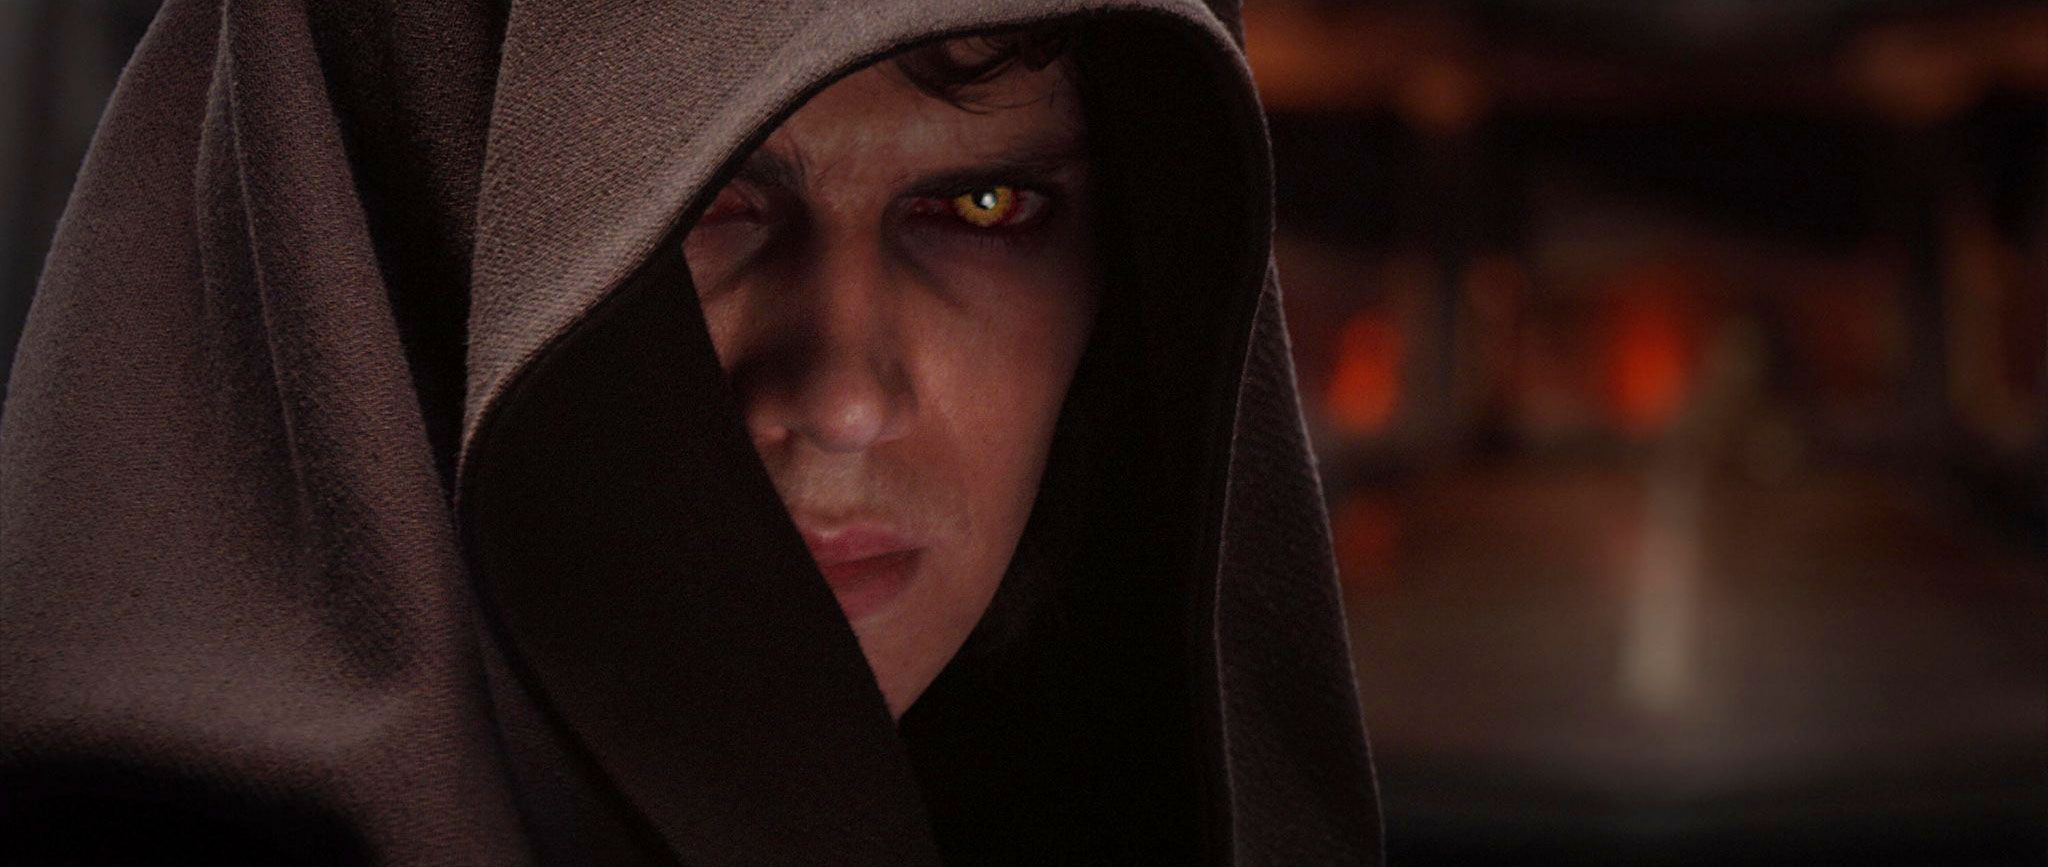 Star Wars Prequels Main Problem Has Been Fixed By The Clone Wars